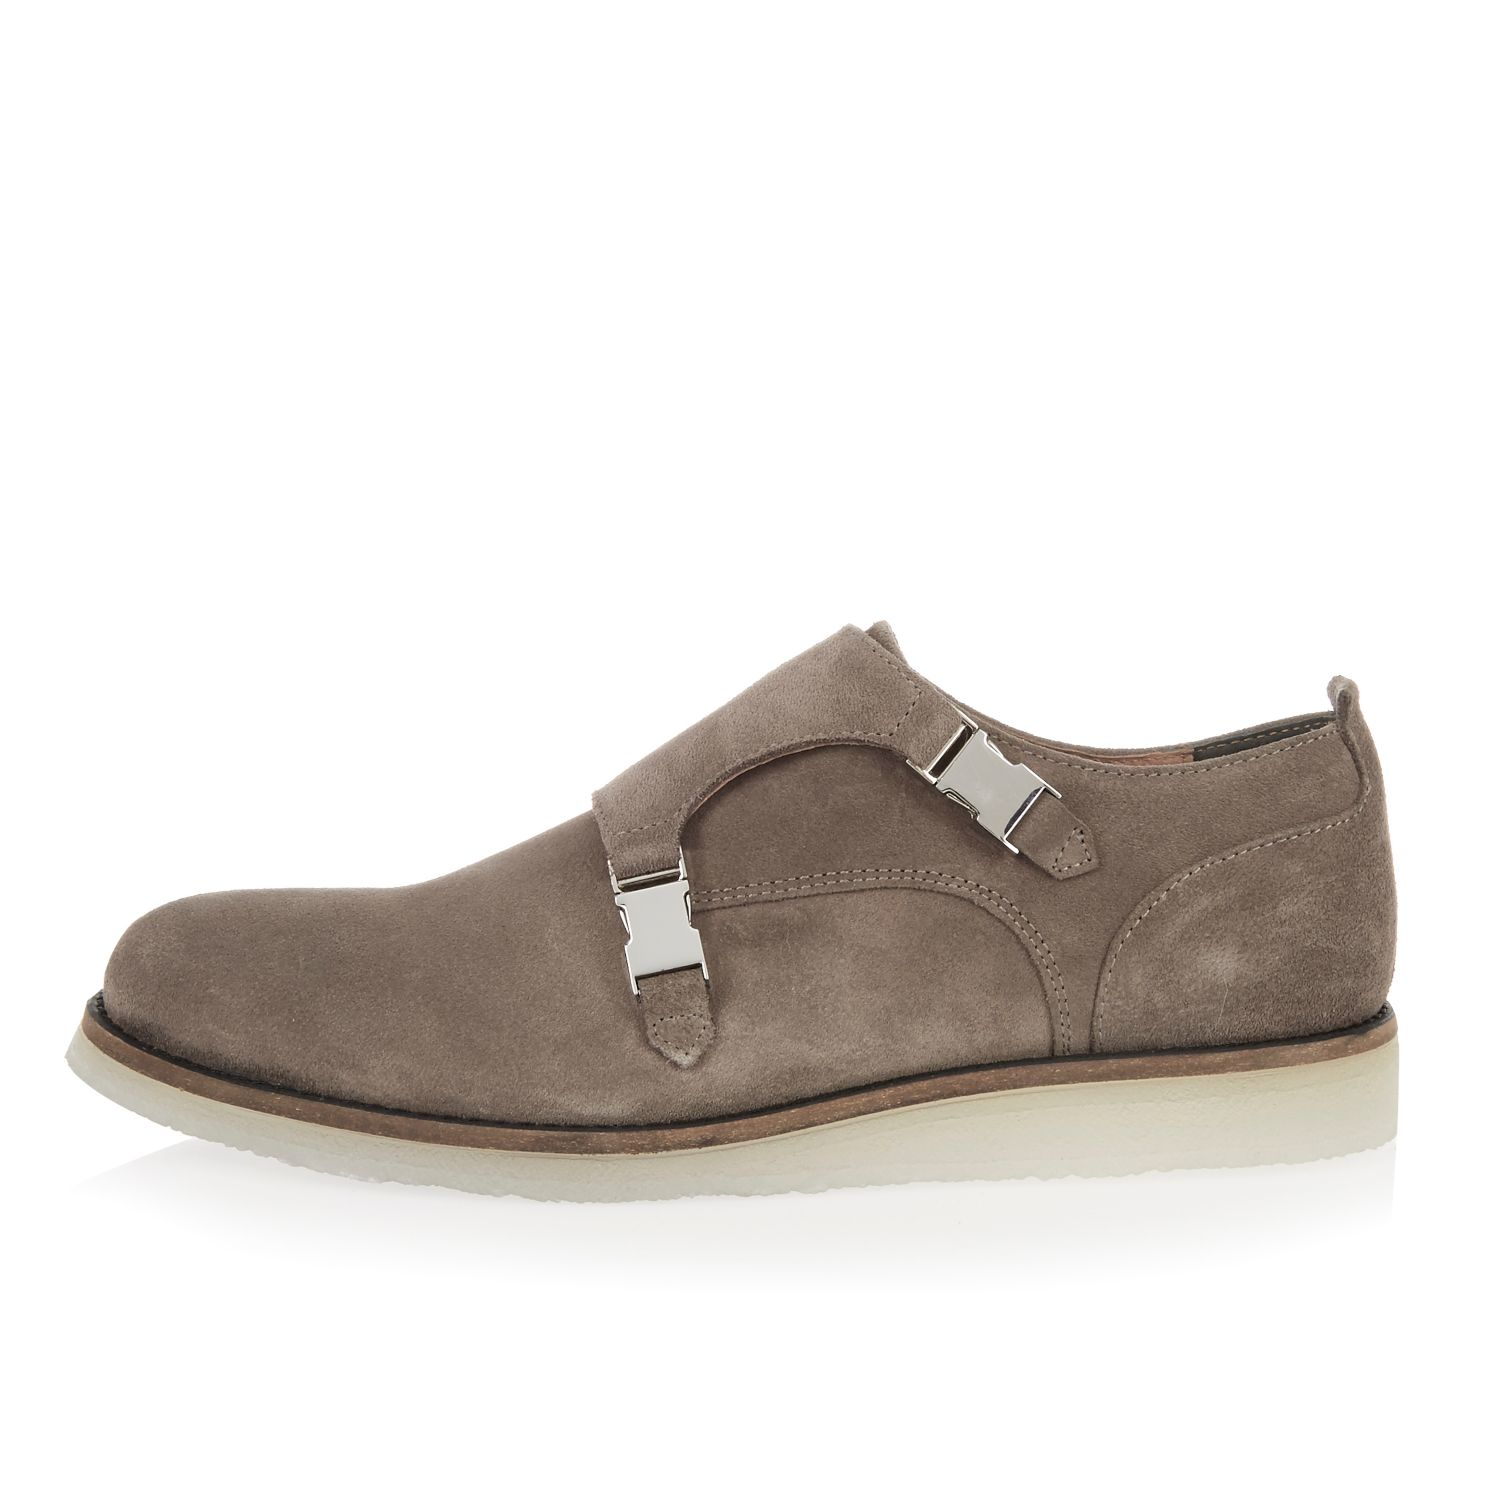 Cheap Mens Slip On Shoes Images Ideas How Toms